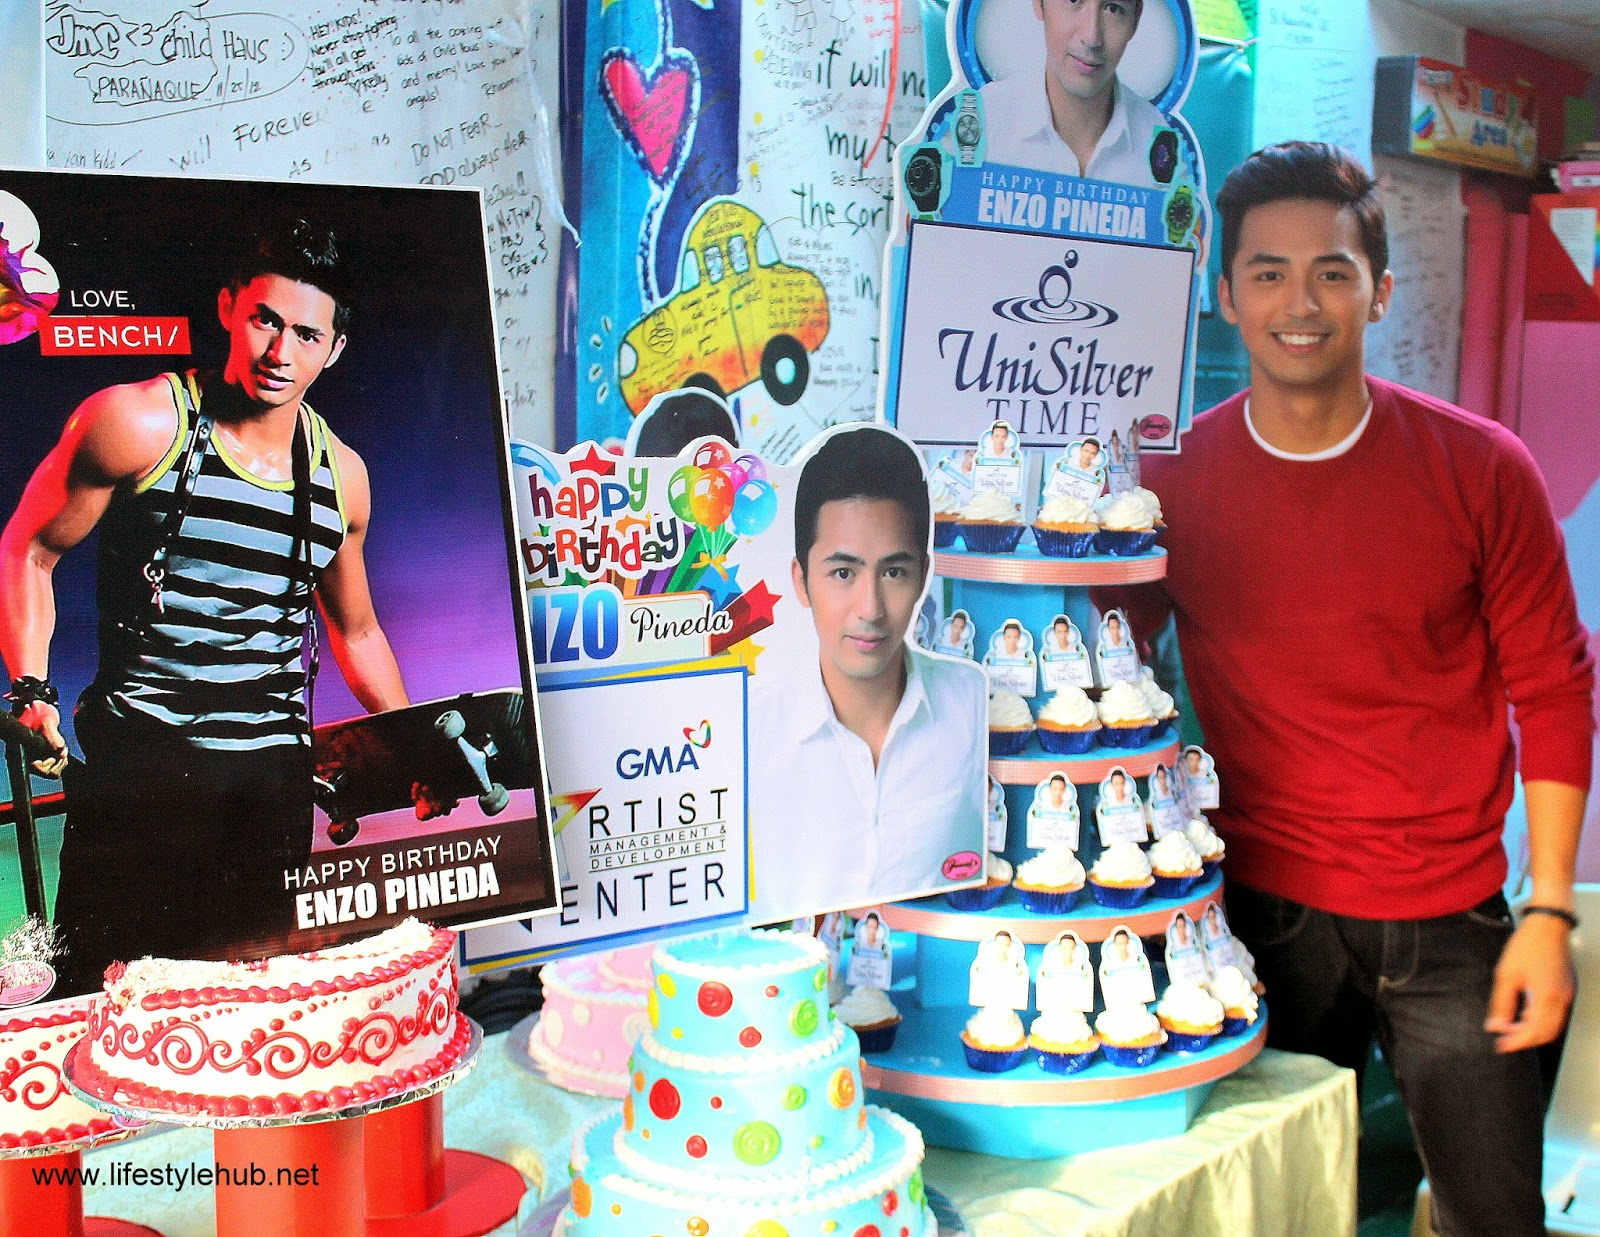 enzo pineda birthday the naked truth